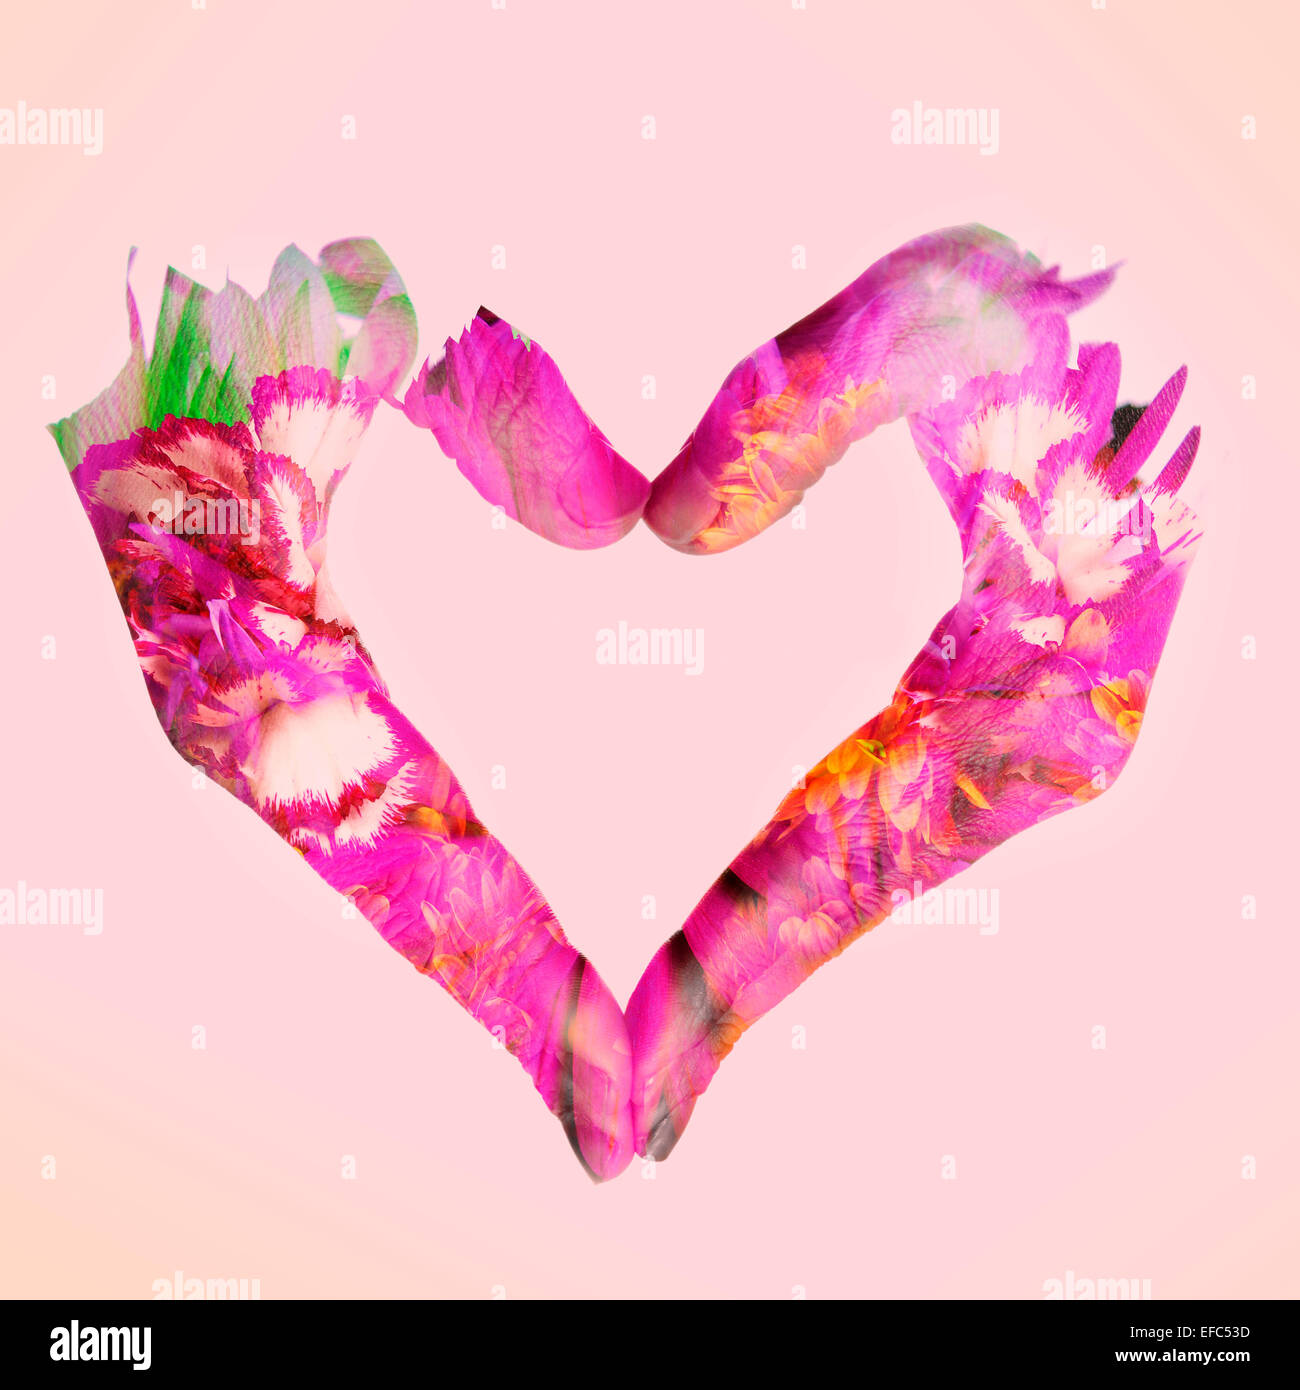 double exposure of woman hands forming a heart and flowers, on a pink background - Stock Image